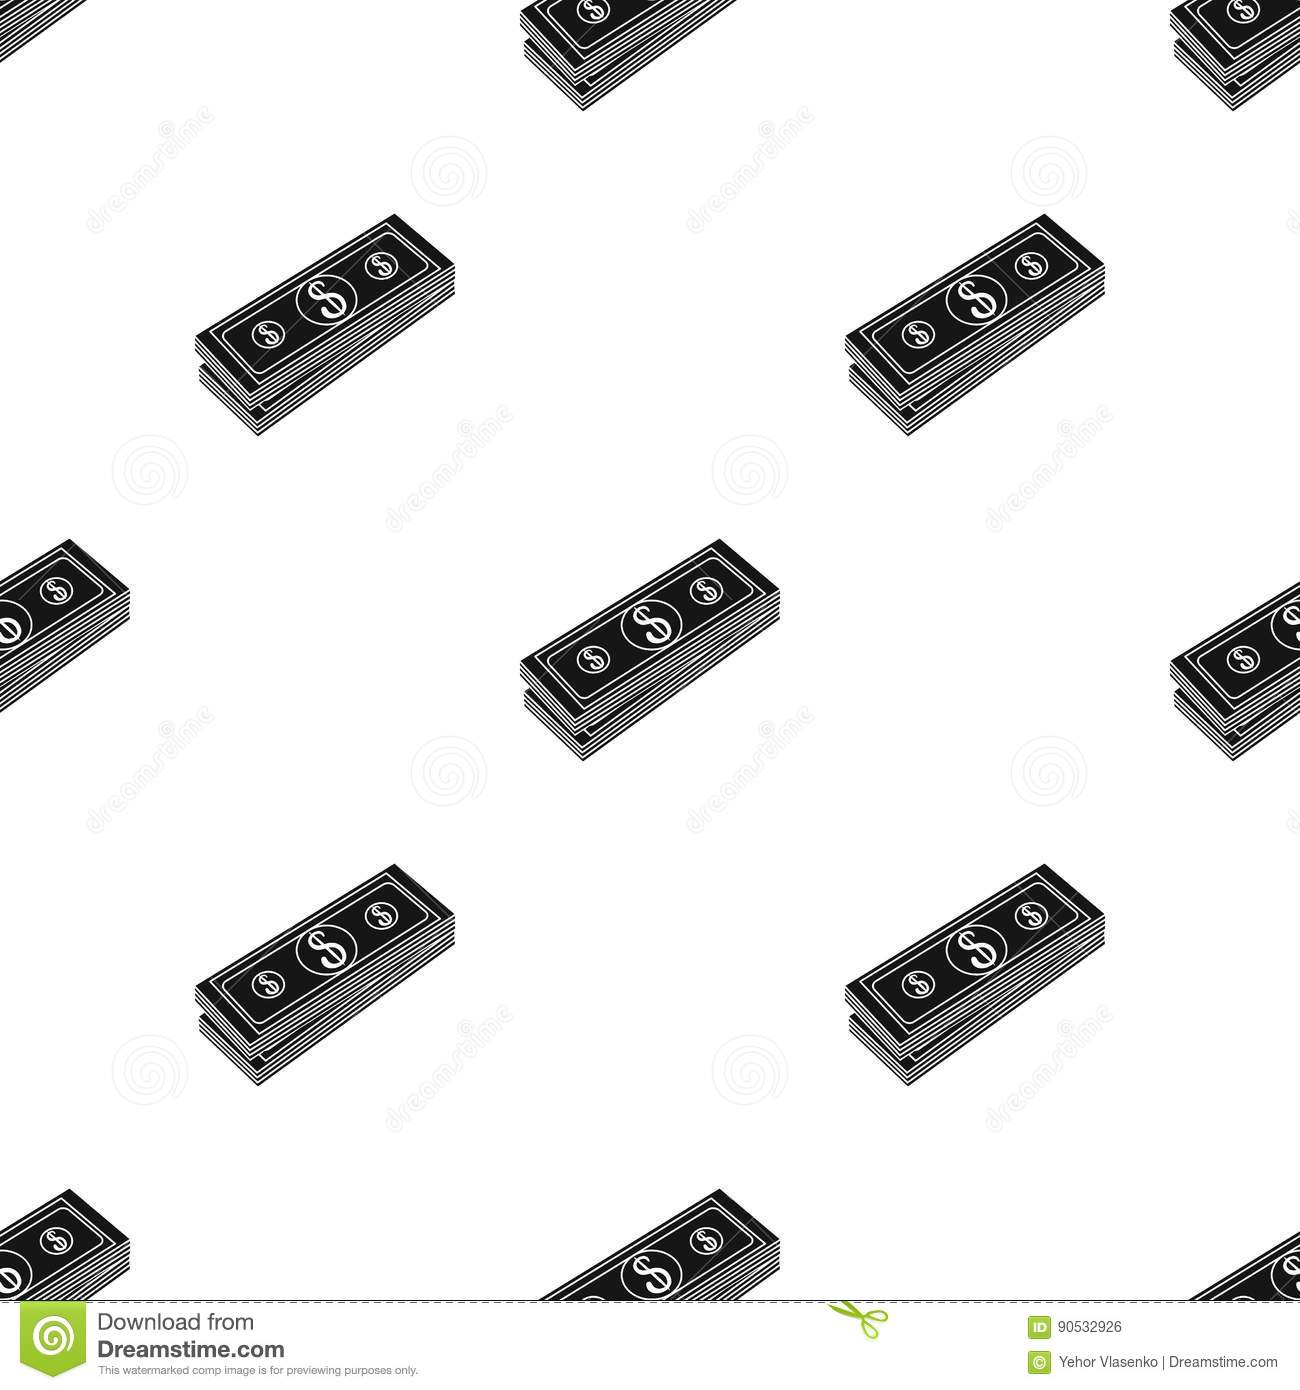 stack of money icon in black style isolated on white